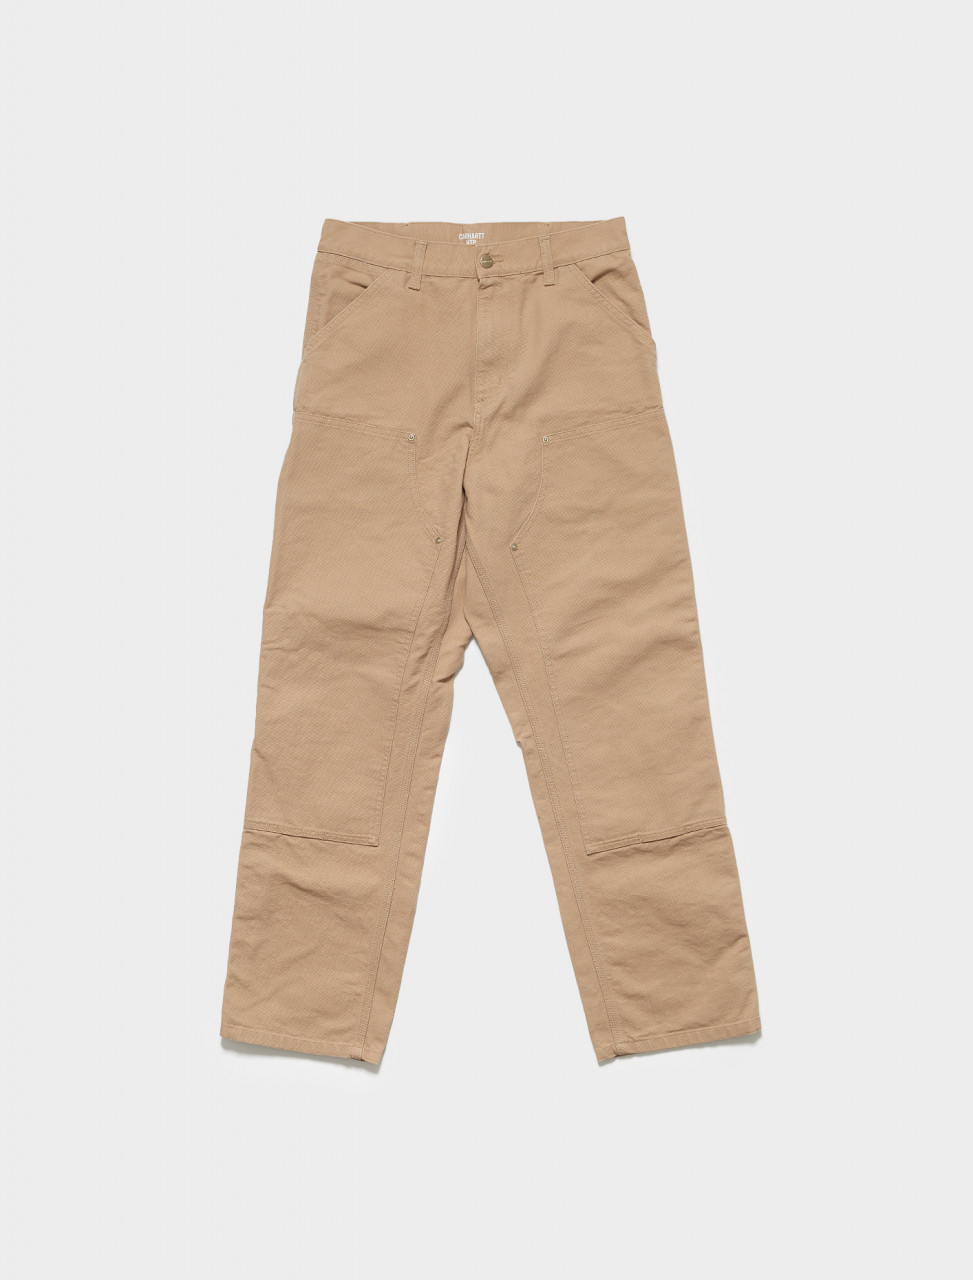 I029196-07E CARHARTT WIP DOUBLE KNEE PANTS IN DUSTY H BROWN